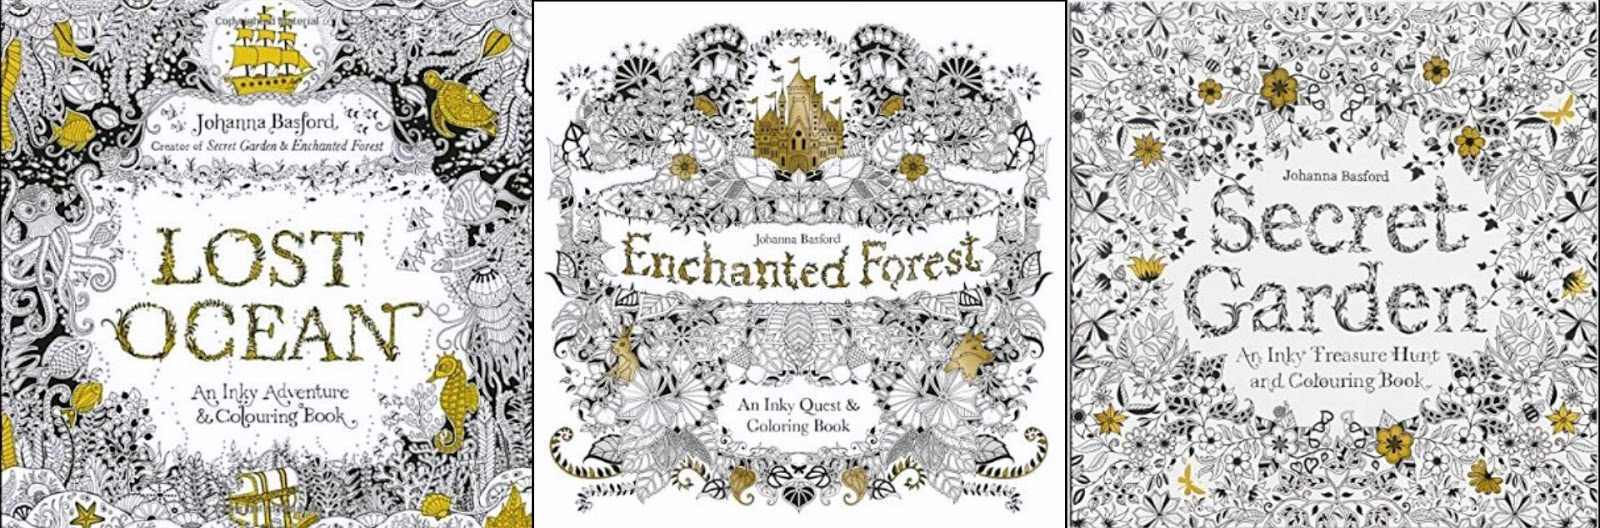 One Of My Favourite Illustrators Johanna Basford Already Has A Trilogy Incredible Books To Her Name Secret Garden Enchanted Forest And Lost Ocean